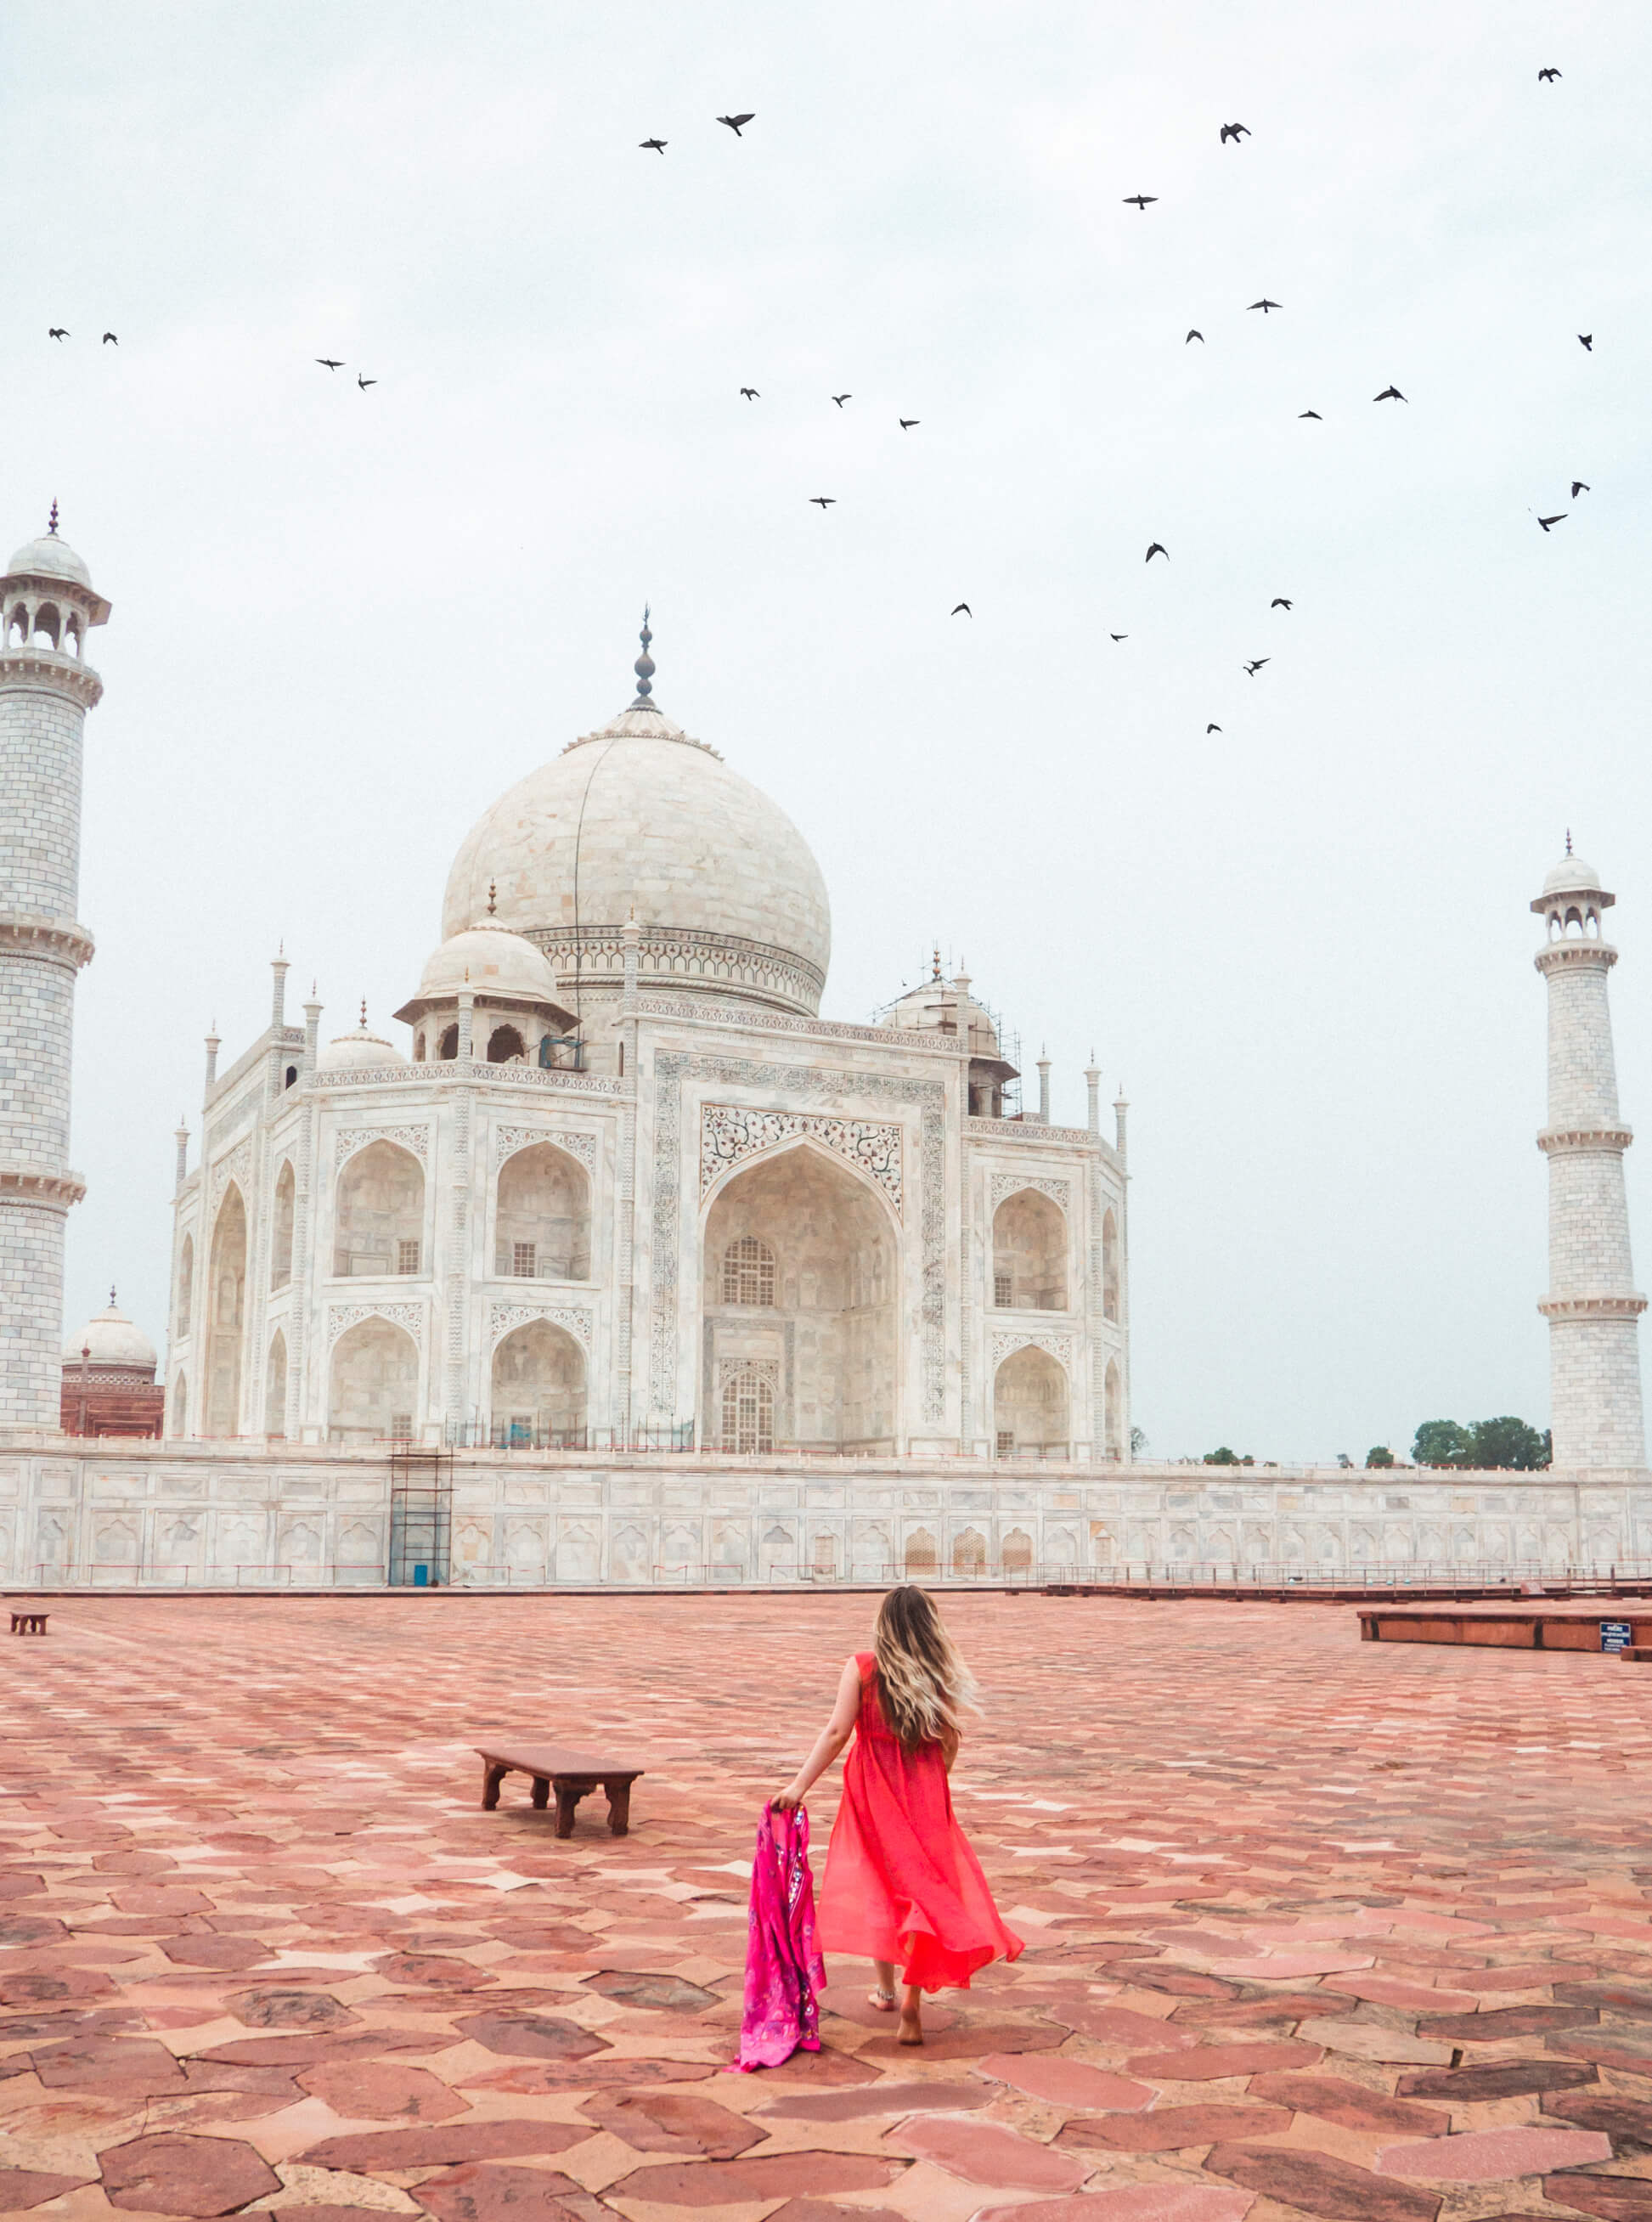 Taj Mahal photography tips - How to beat the crowds